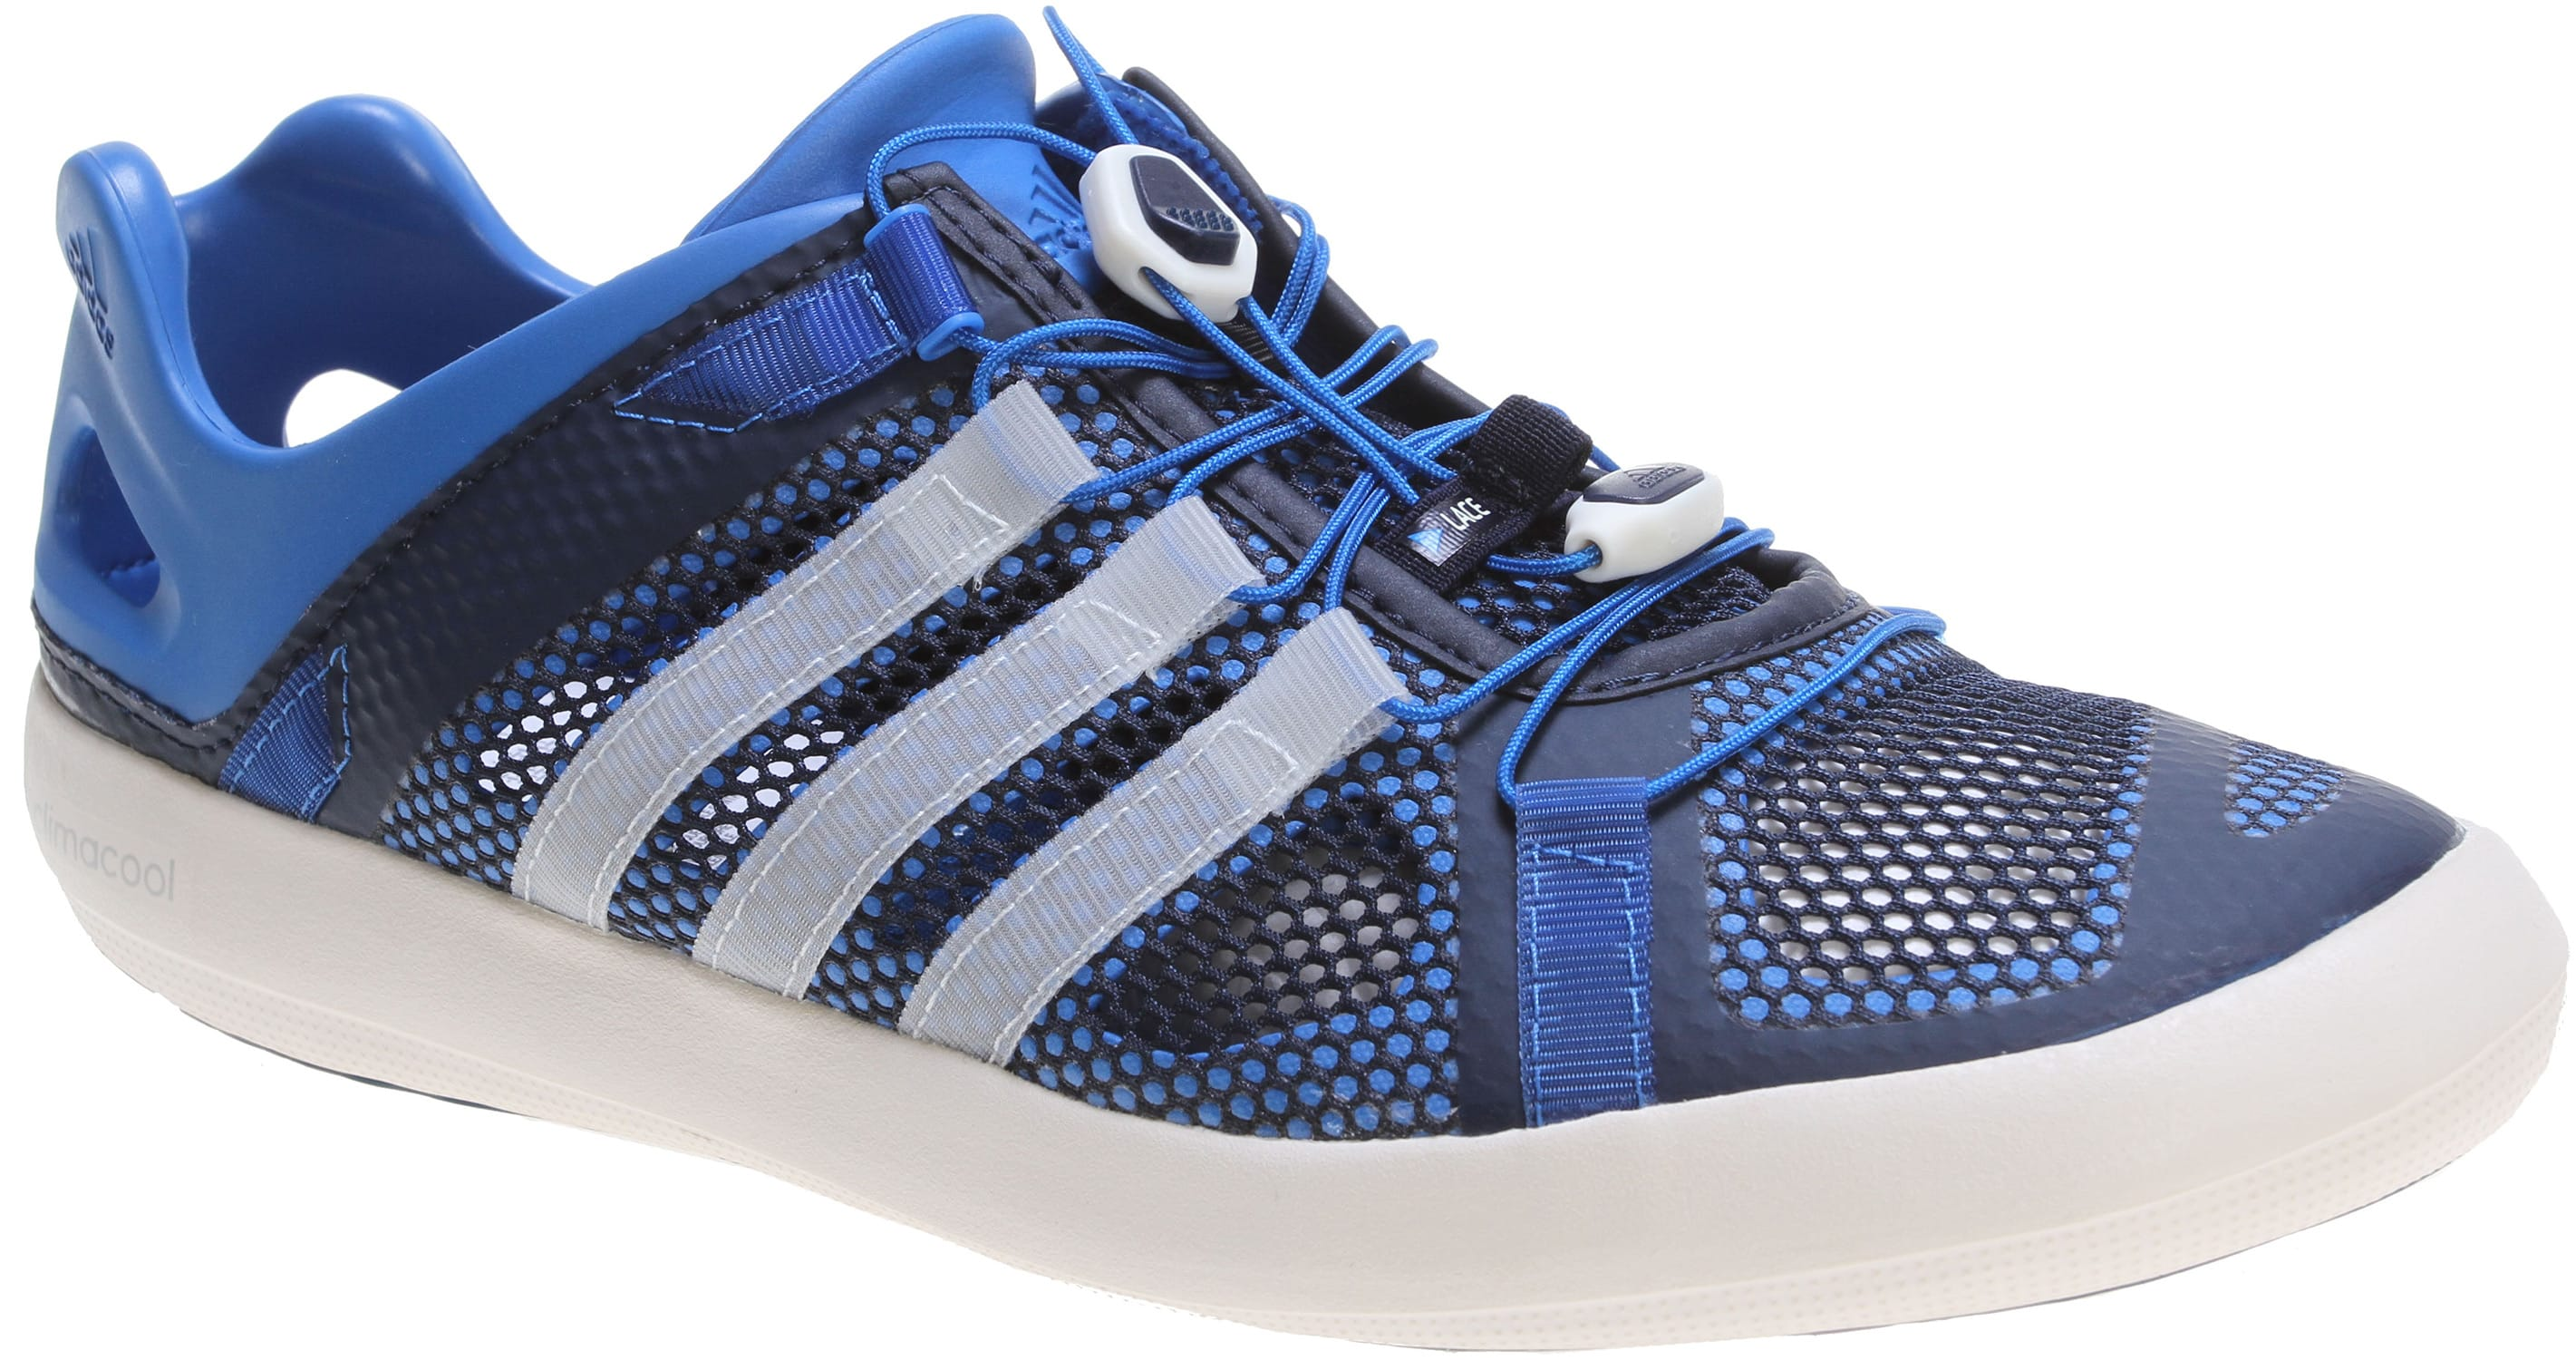 Adidas Climacool Water Shoes For Kids